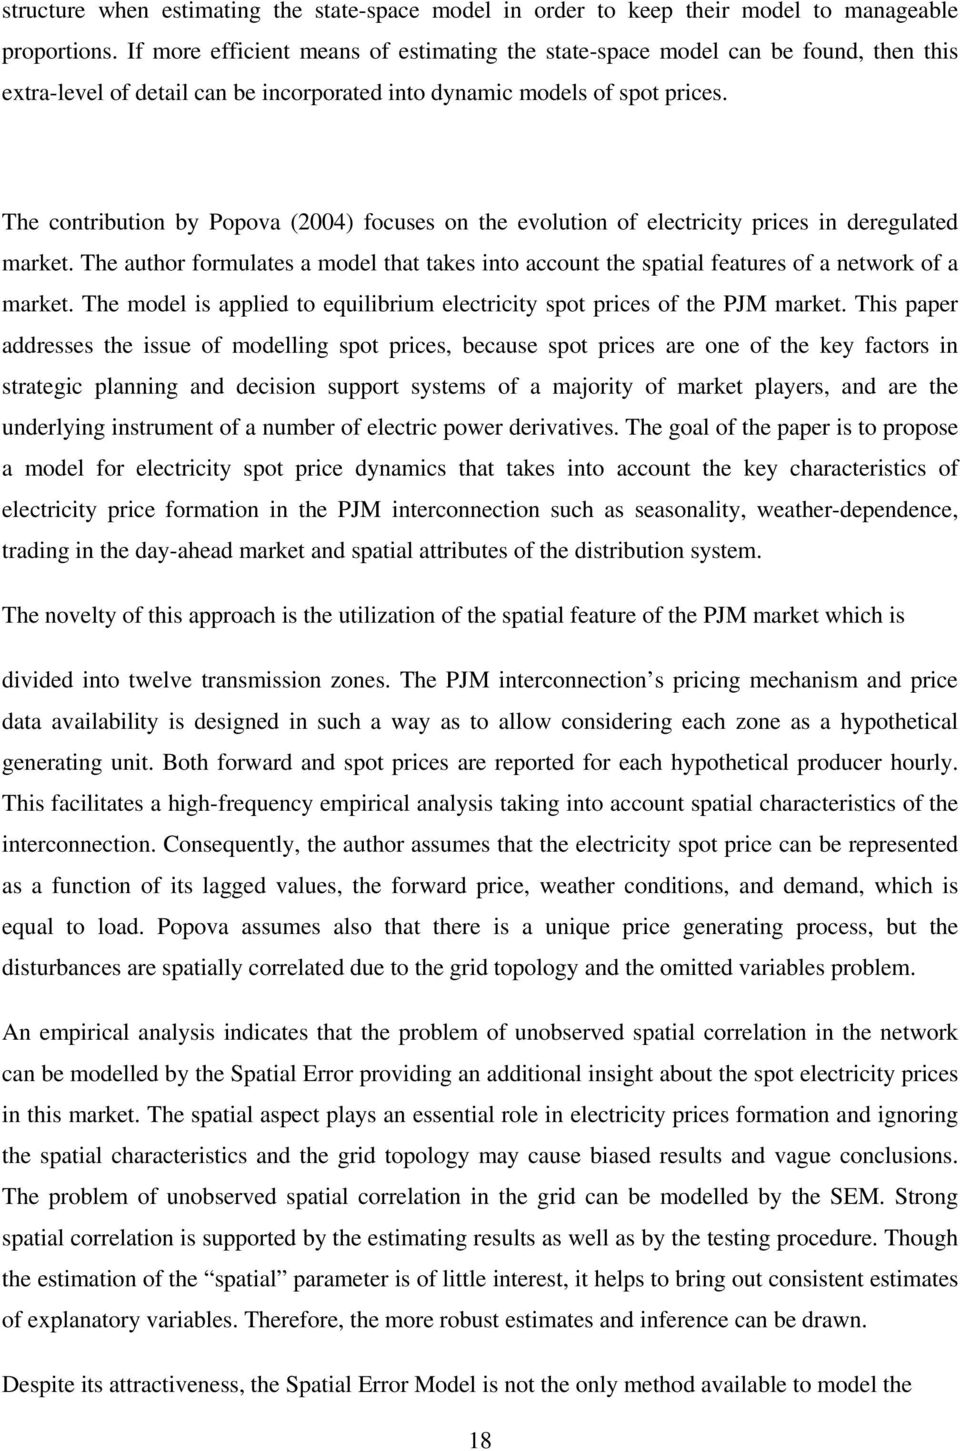 The contribution by Popova (2004) focuses on the evolution of electricity prices in deregulated market.